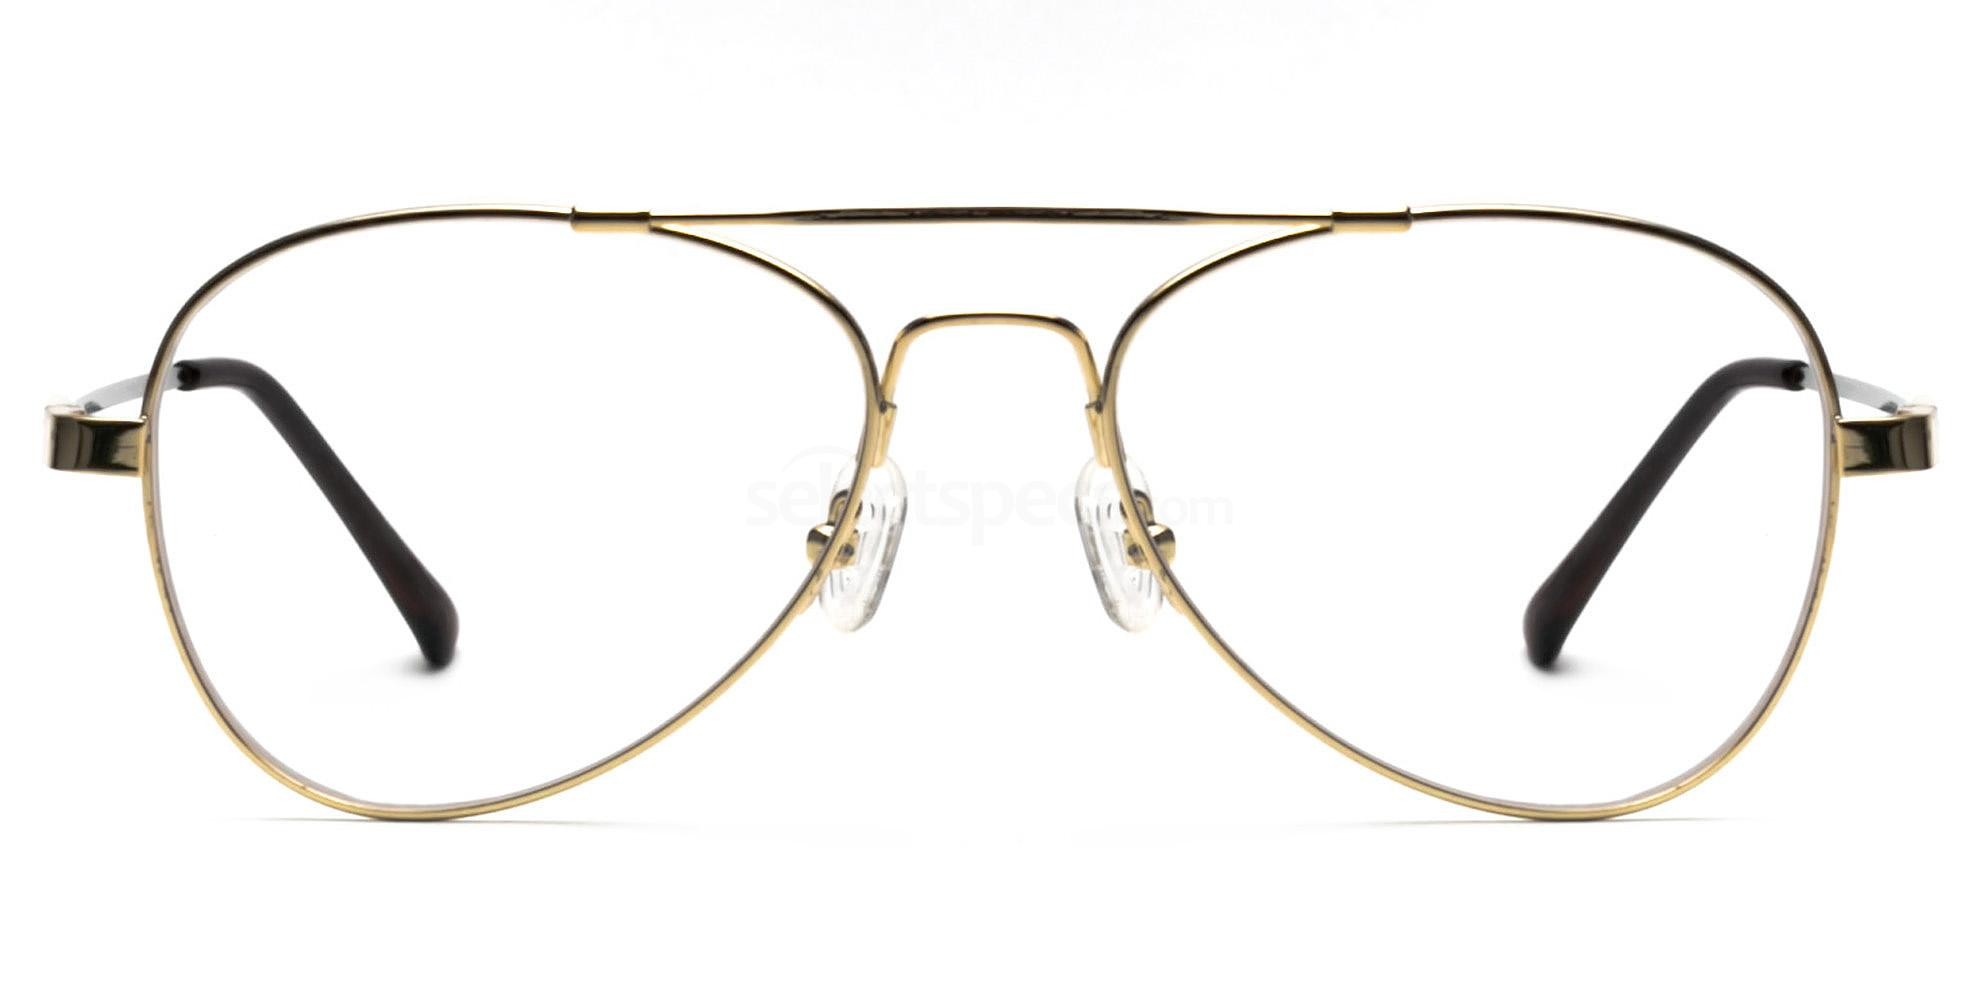 Aviator Prescription Glasses: The New Spectacle Trend | Fashion ...